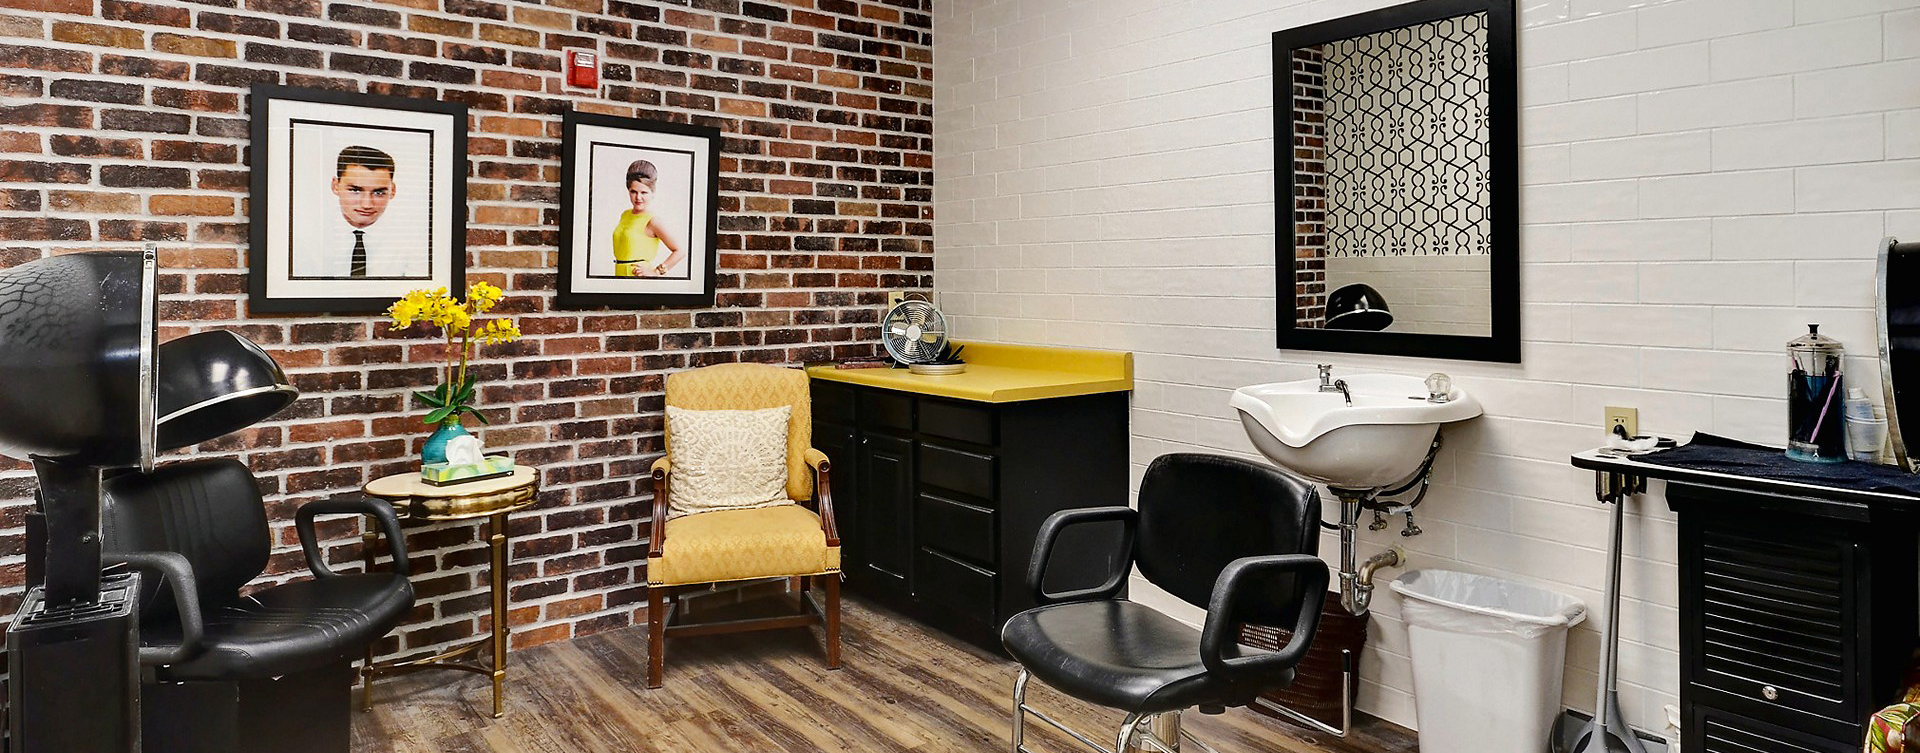 Receive personalized, at-home treatment from our stylist in the salon at Bickford of Crystal Lake